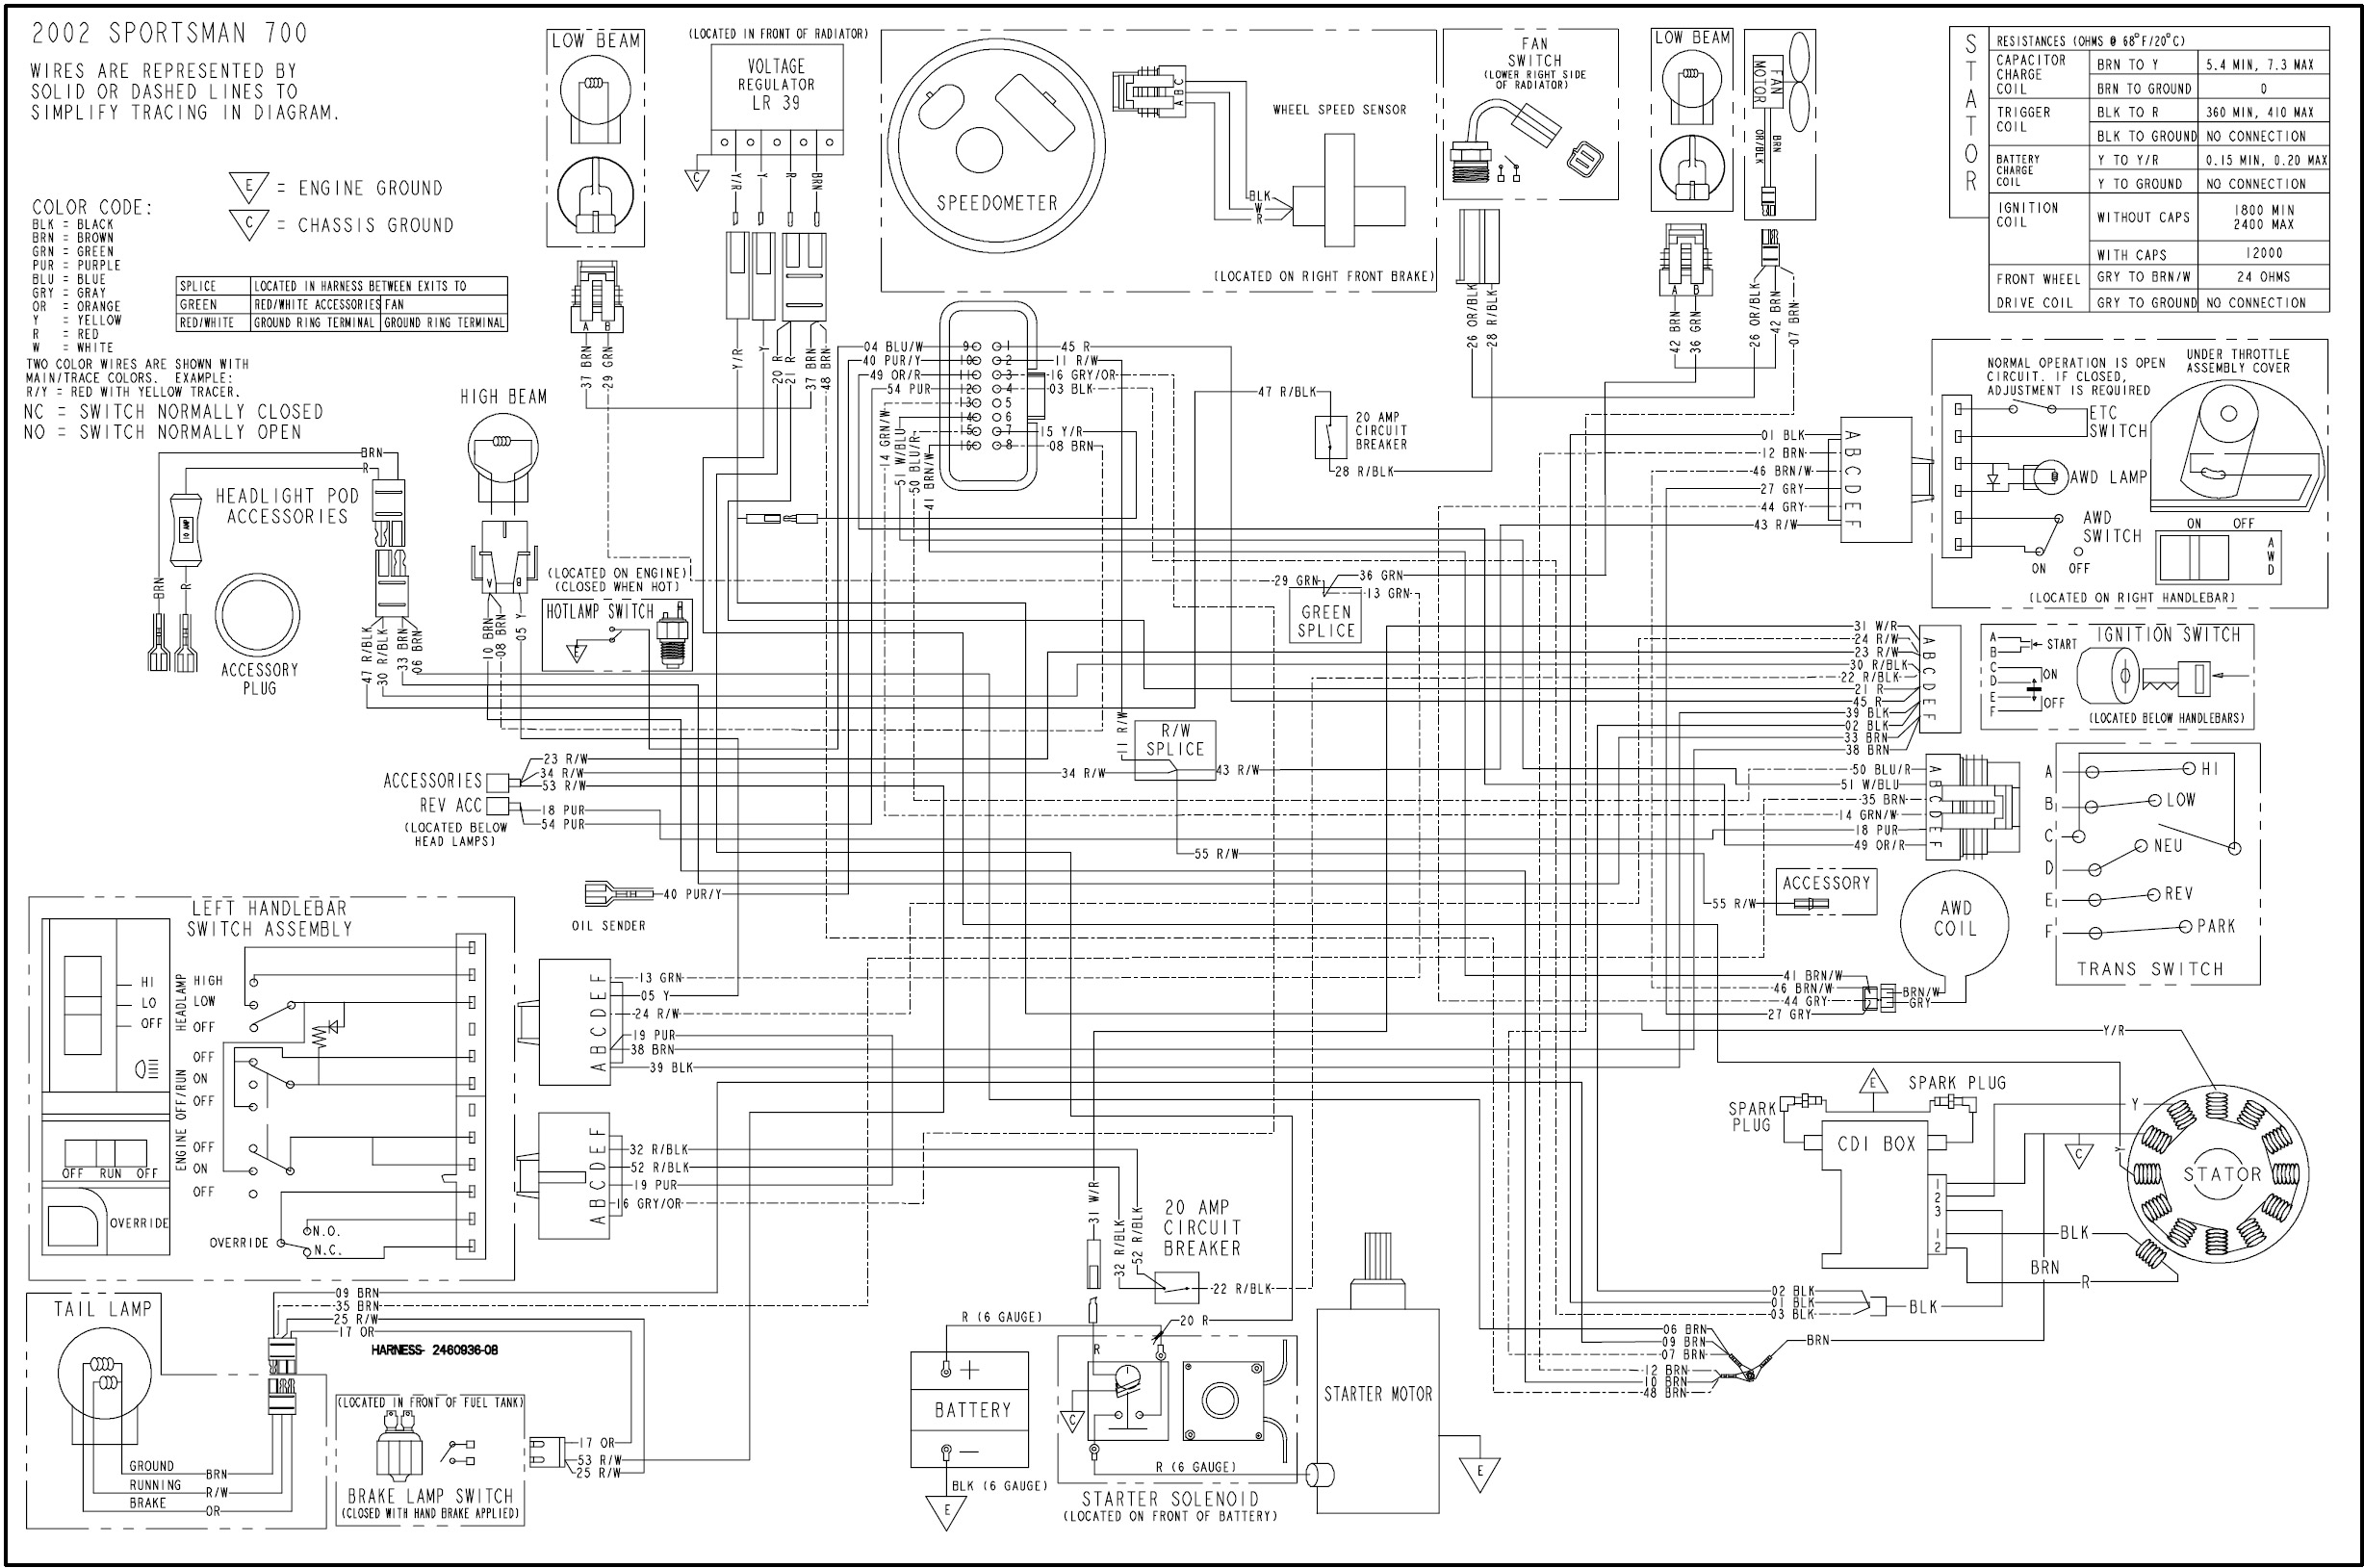 wd_700_02 wiring diagram 2003 polaris 600 atv readingrat net polaris 500 wiring diagram at crackthecode.co